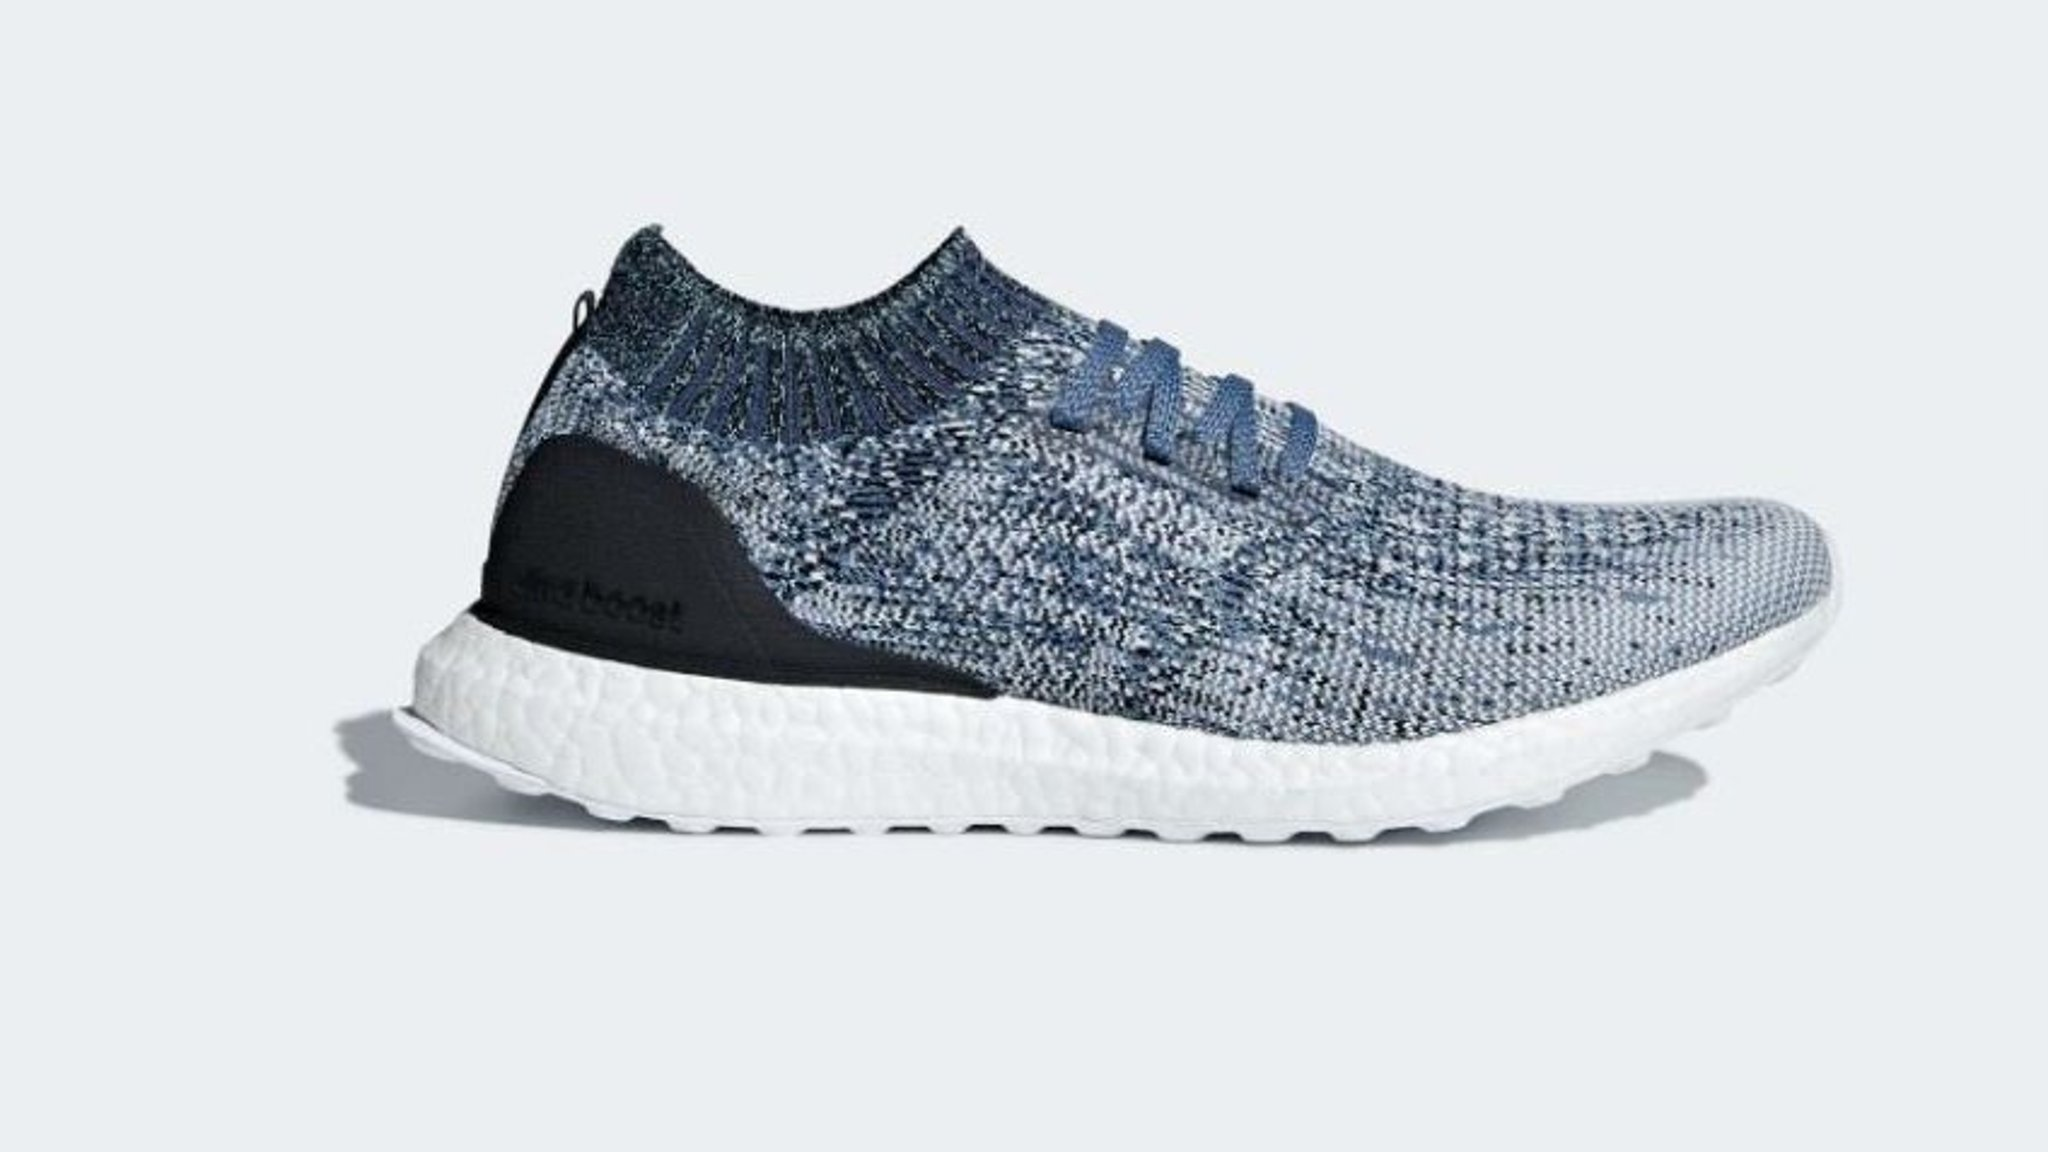 a951cad0299 ... reduced adidas vows to use only recycled plastics by 2024 financial  times 73bd8 551ea